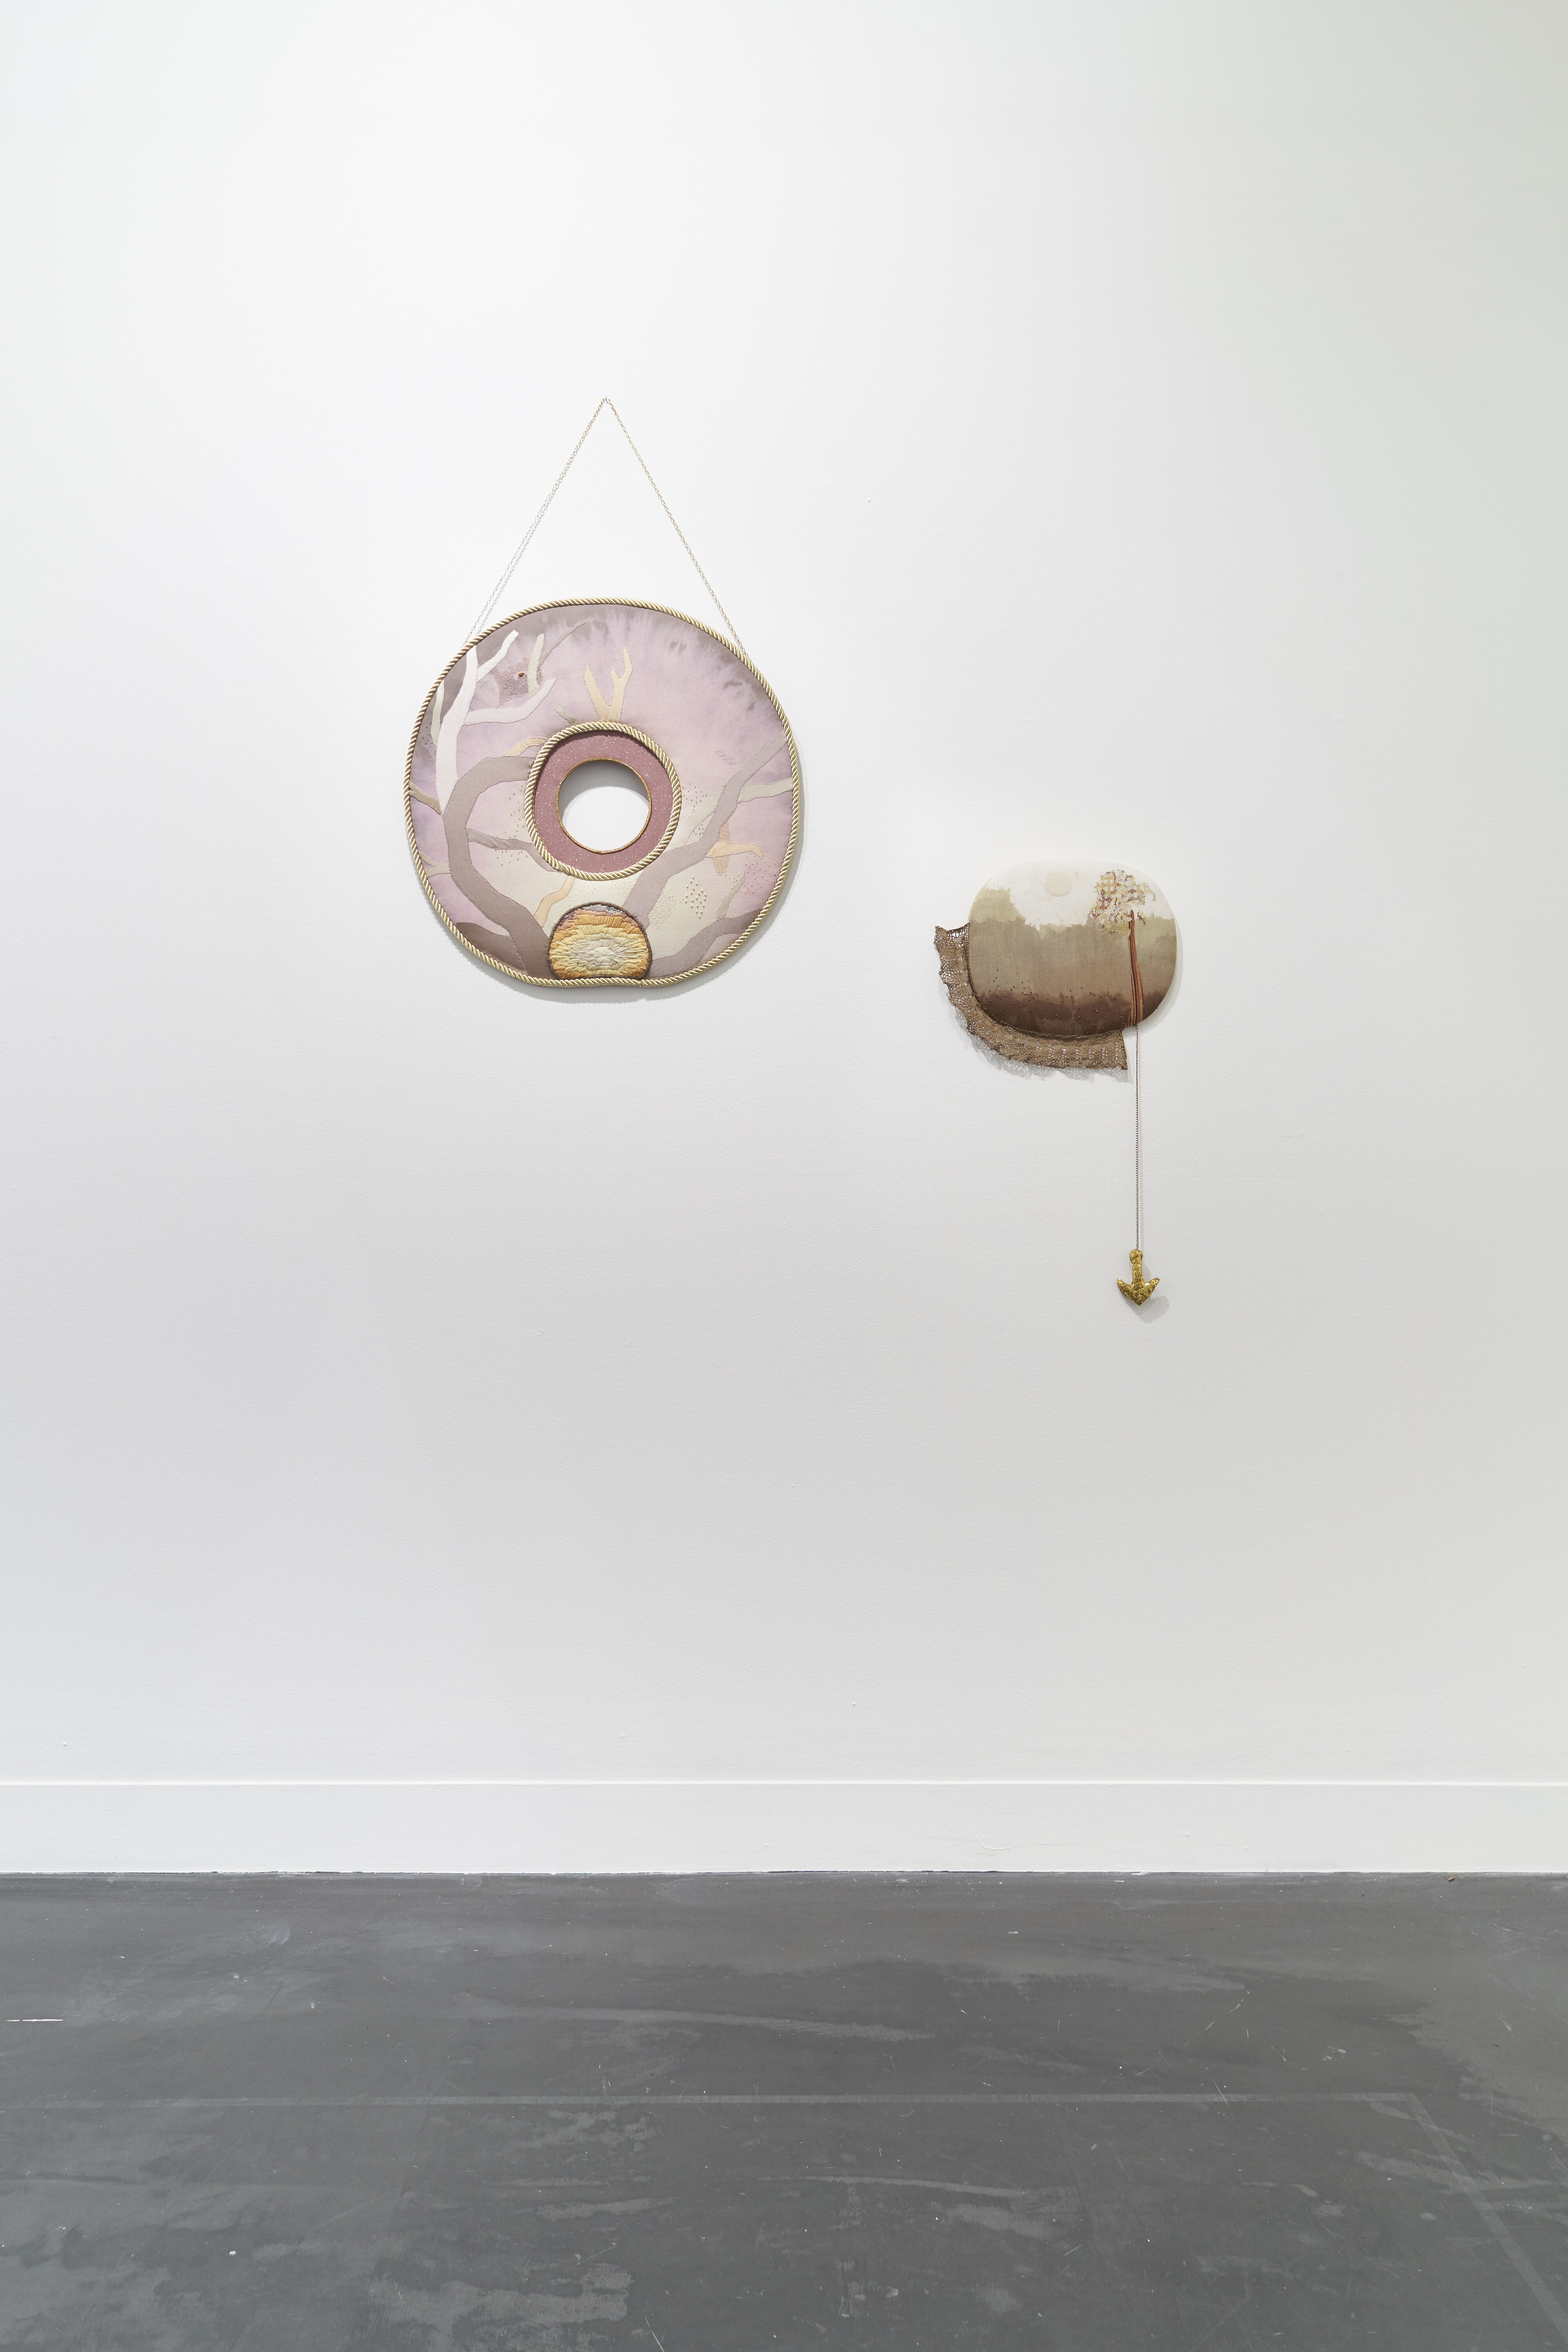 Specks by textile artist Sera Waters, installed at Hugo Michell Gallery.